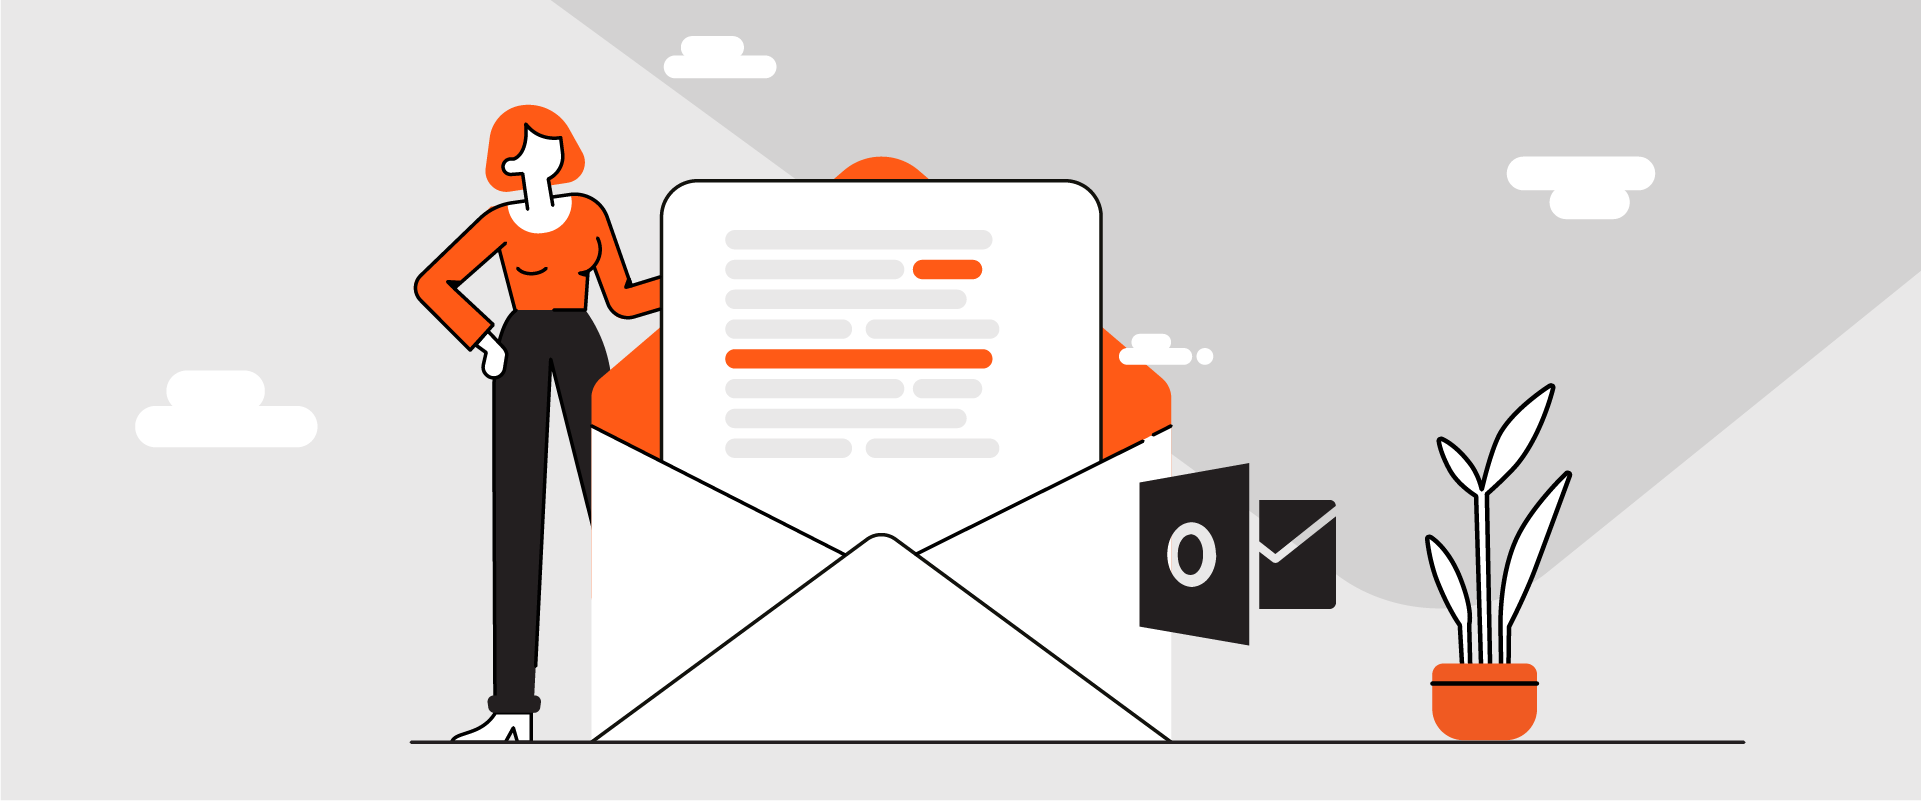 Implementing emails in 2021: How to create inline tags with vertical alignment that work in Outlook